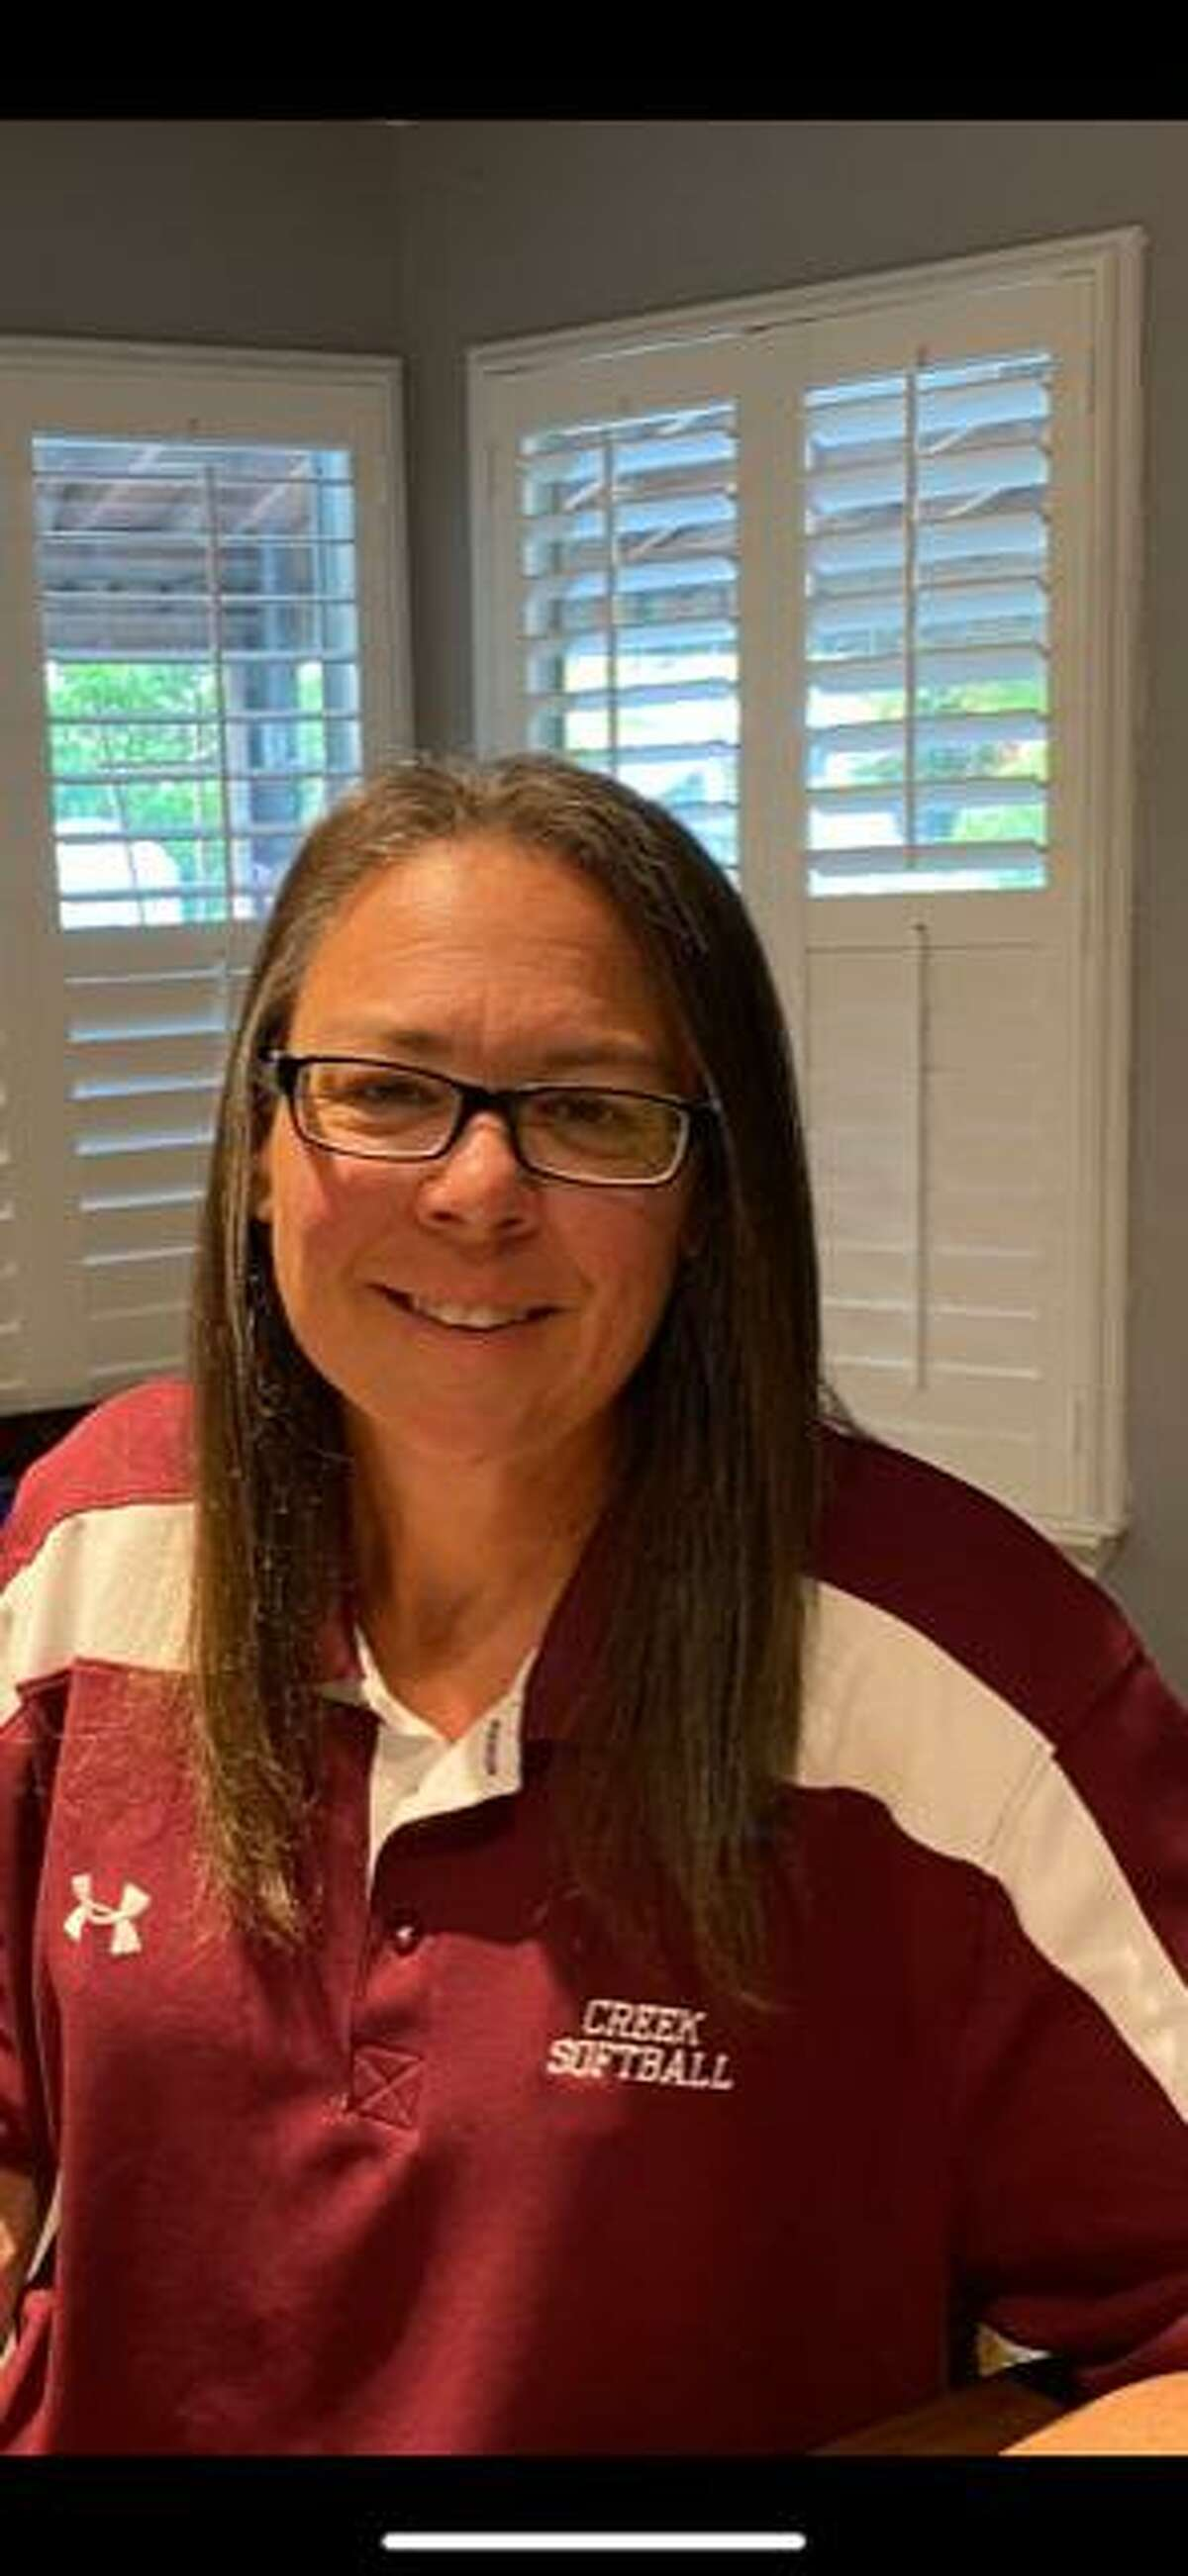 Kathy Morton has been named as the new Clear Creek head softball coach. She previously served as head softball coach at Clear Springs.